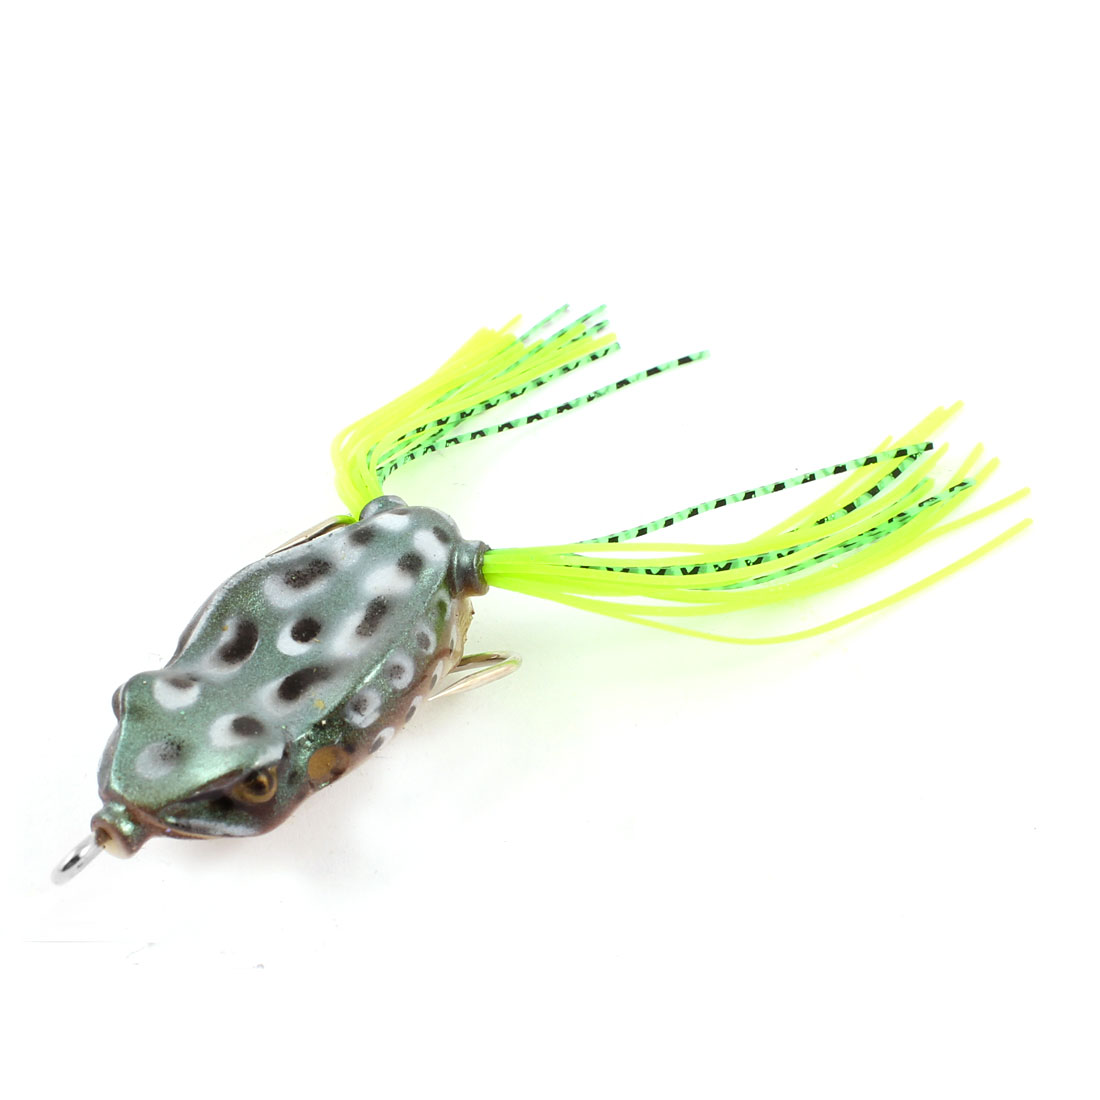 Yellow Green Black Soft Silicone Frog Shaped Lure Fishing Bait w Metal Hook